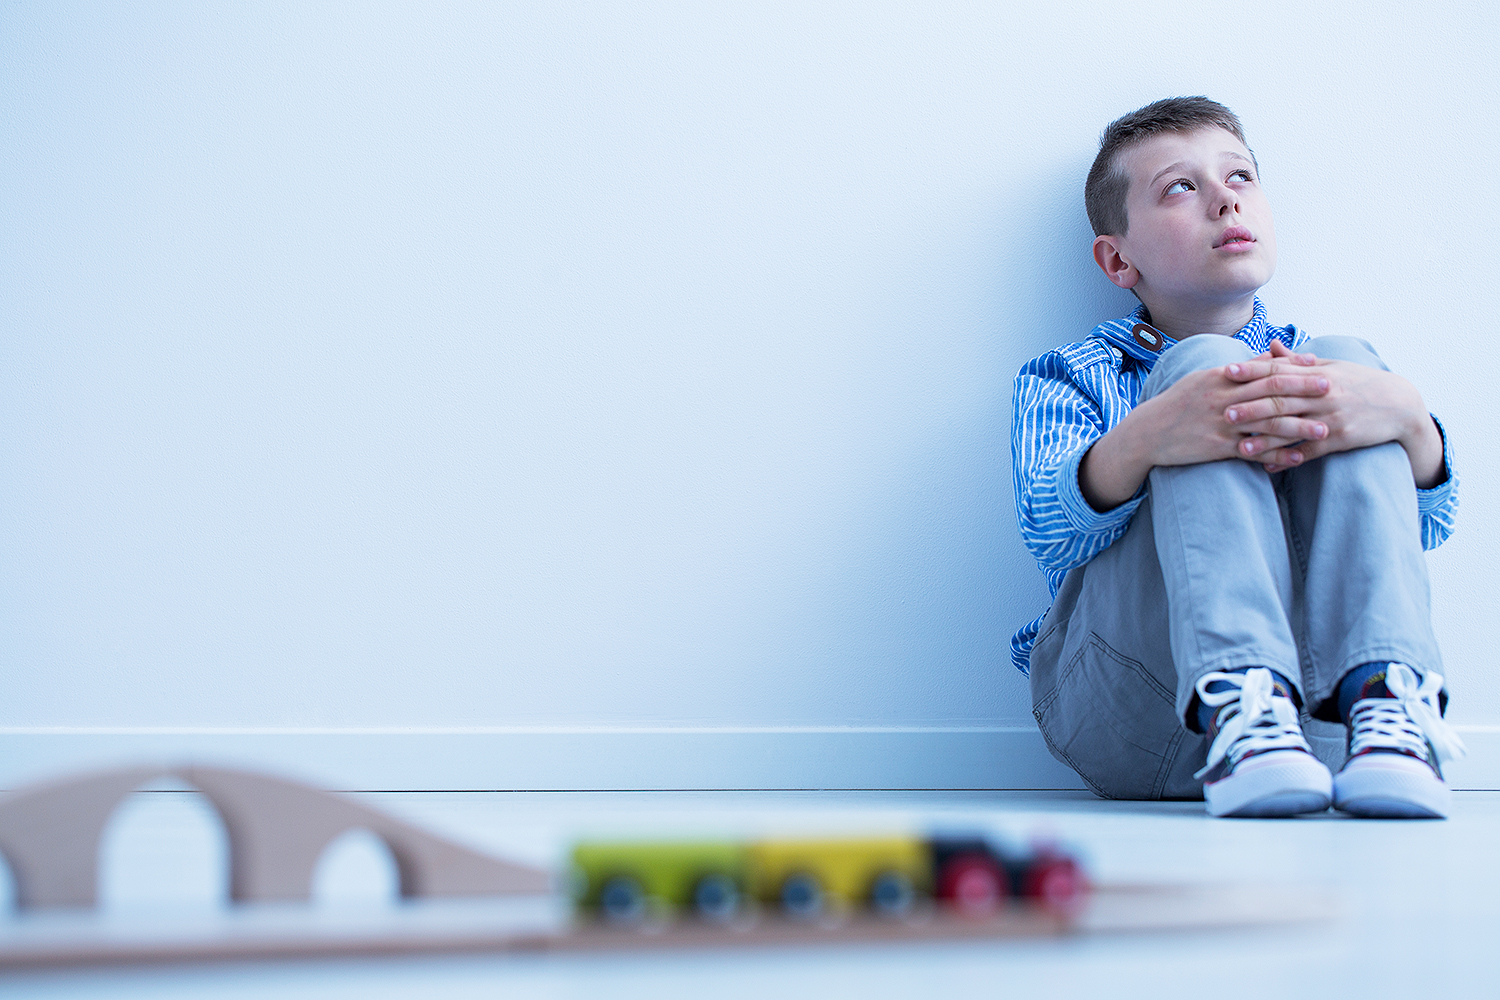 Boy in blue shirt sitting on floor and starring at wall, doesn't want to play with electric train